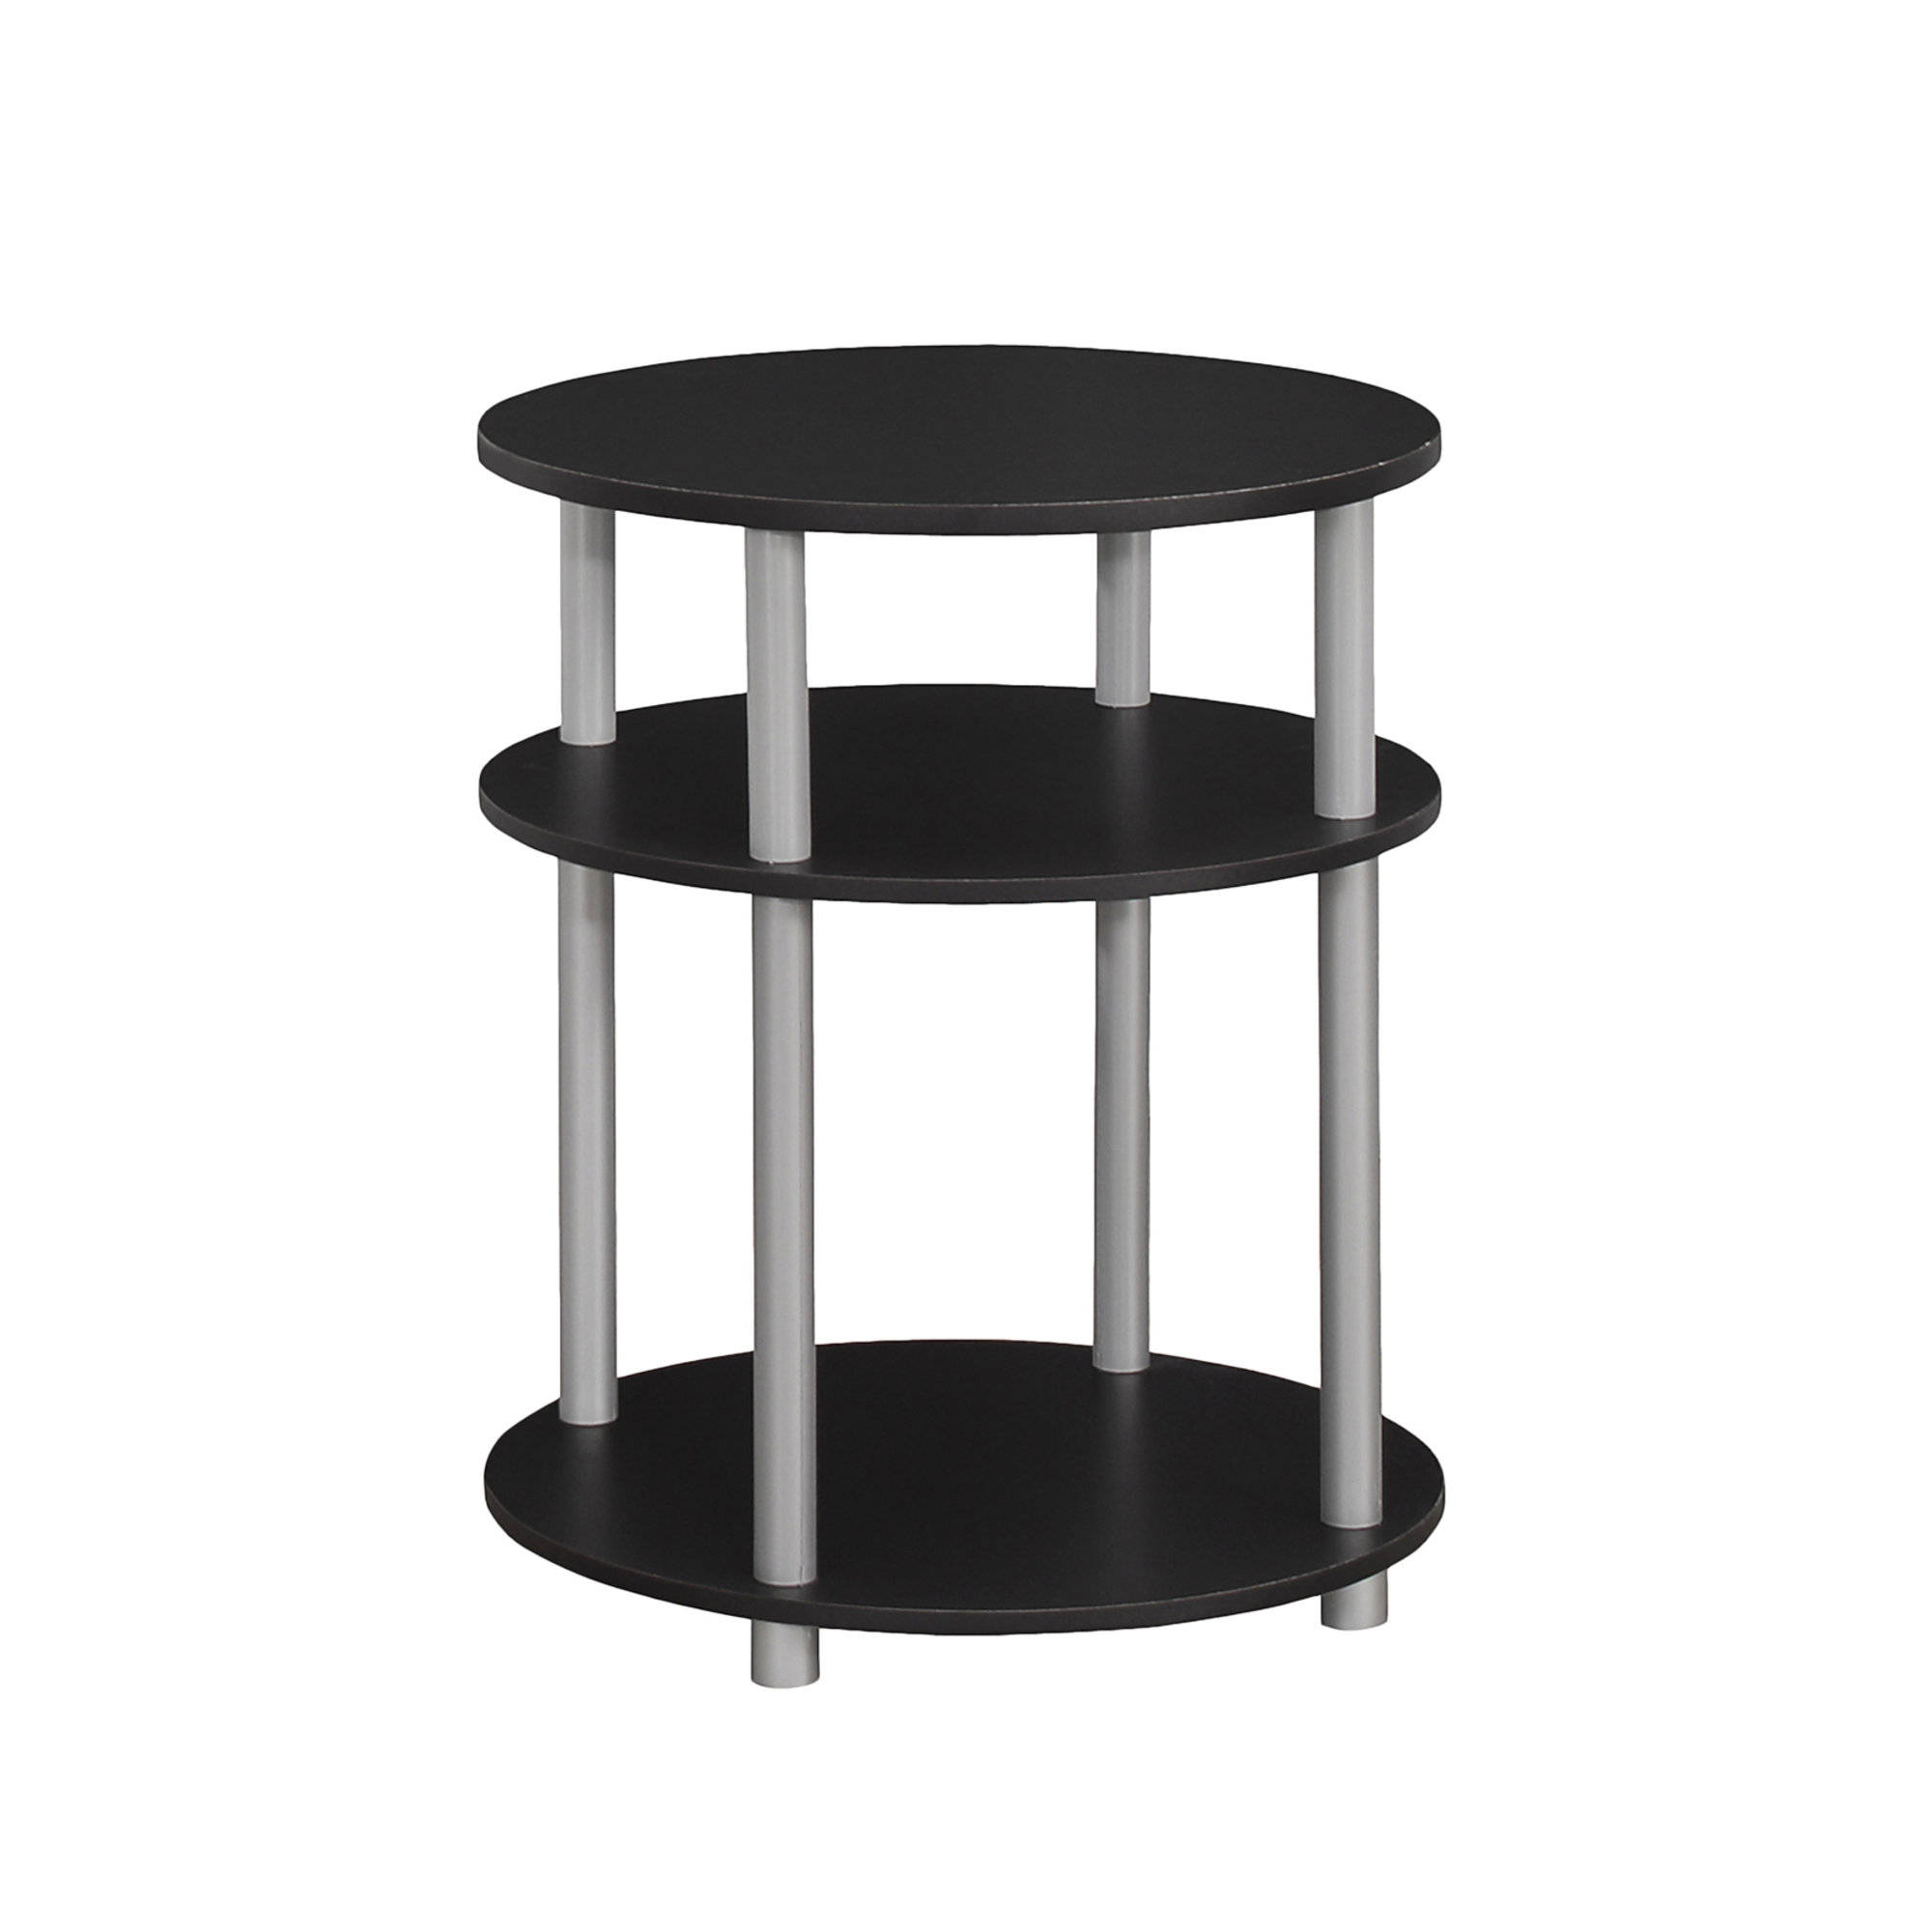 monarch specialties black silver accent table the classy home mnc commercial office furniture tall mirrored chest drawers wood side teak rustic nightstands round outdoor chair pub